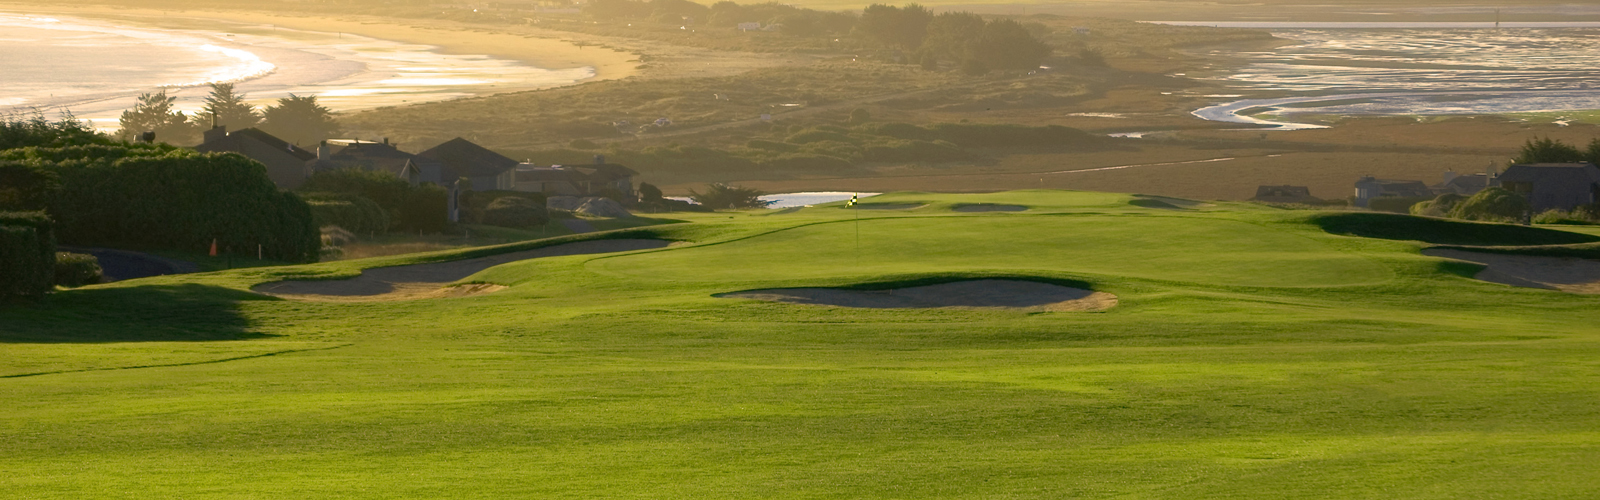 Bodega Bay Golf Course